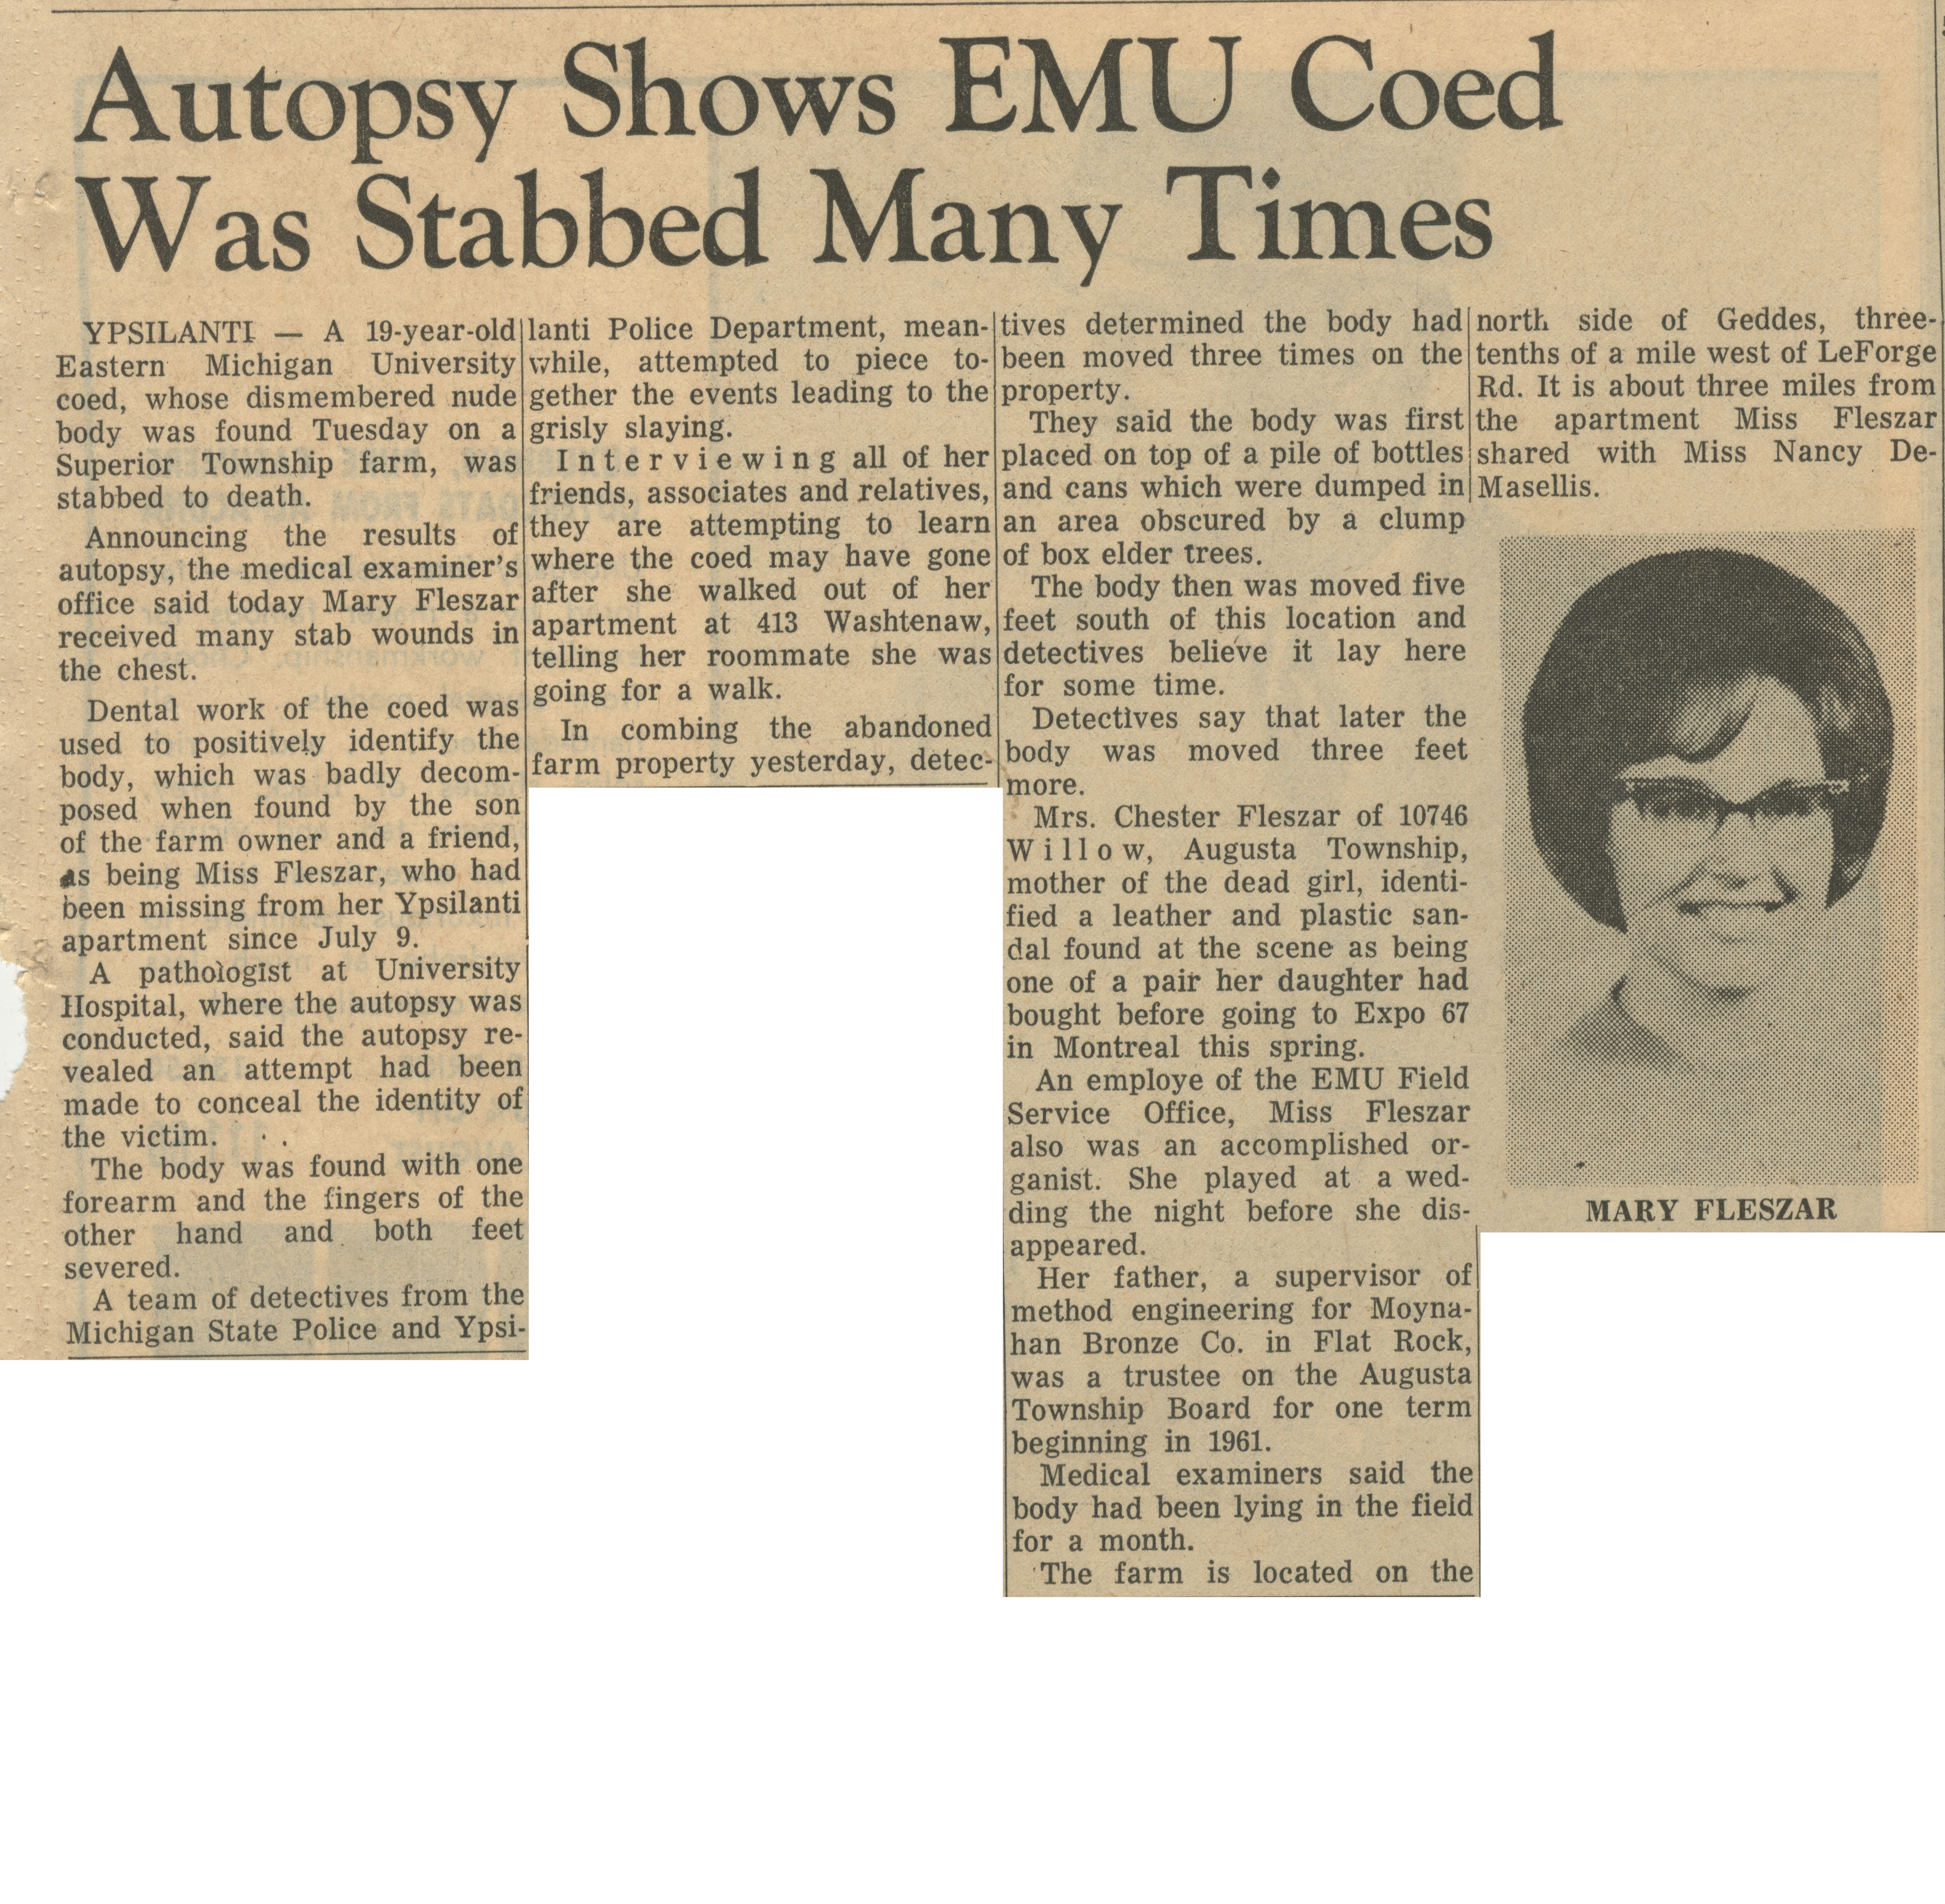 Autopsy Shows EMU Coed Was Stabbed Many Times image